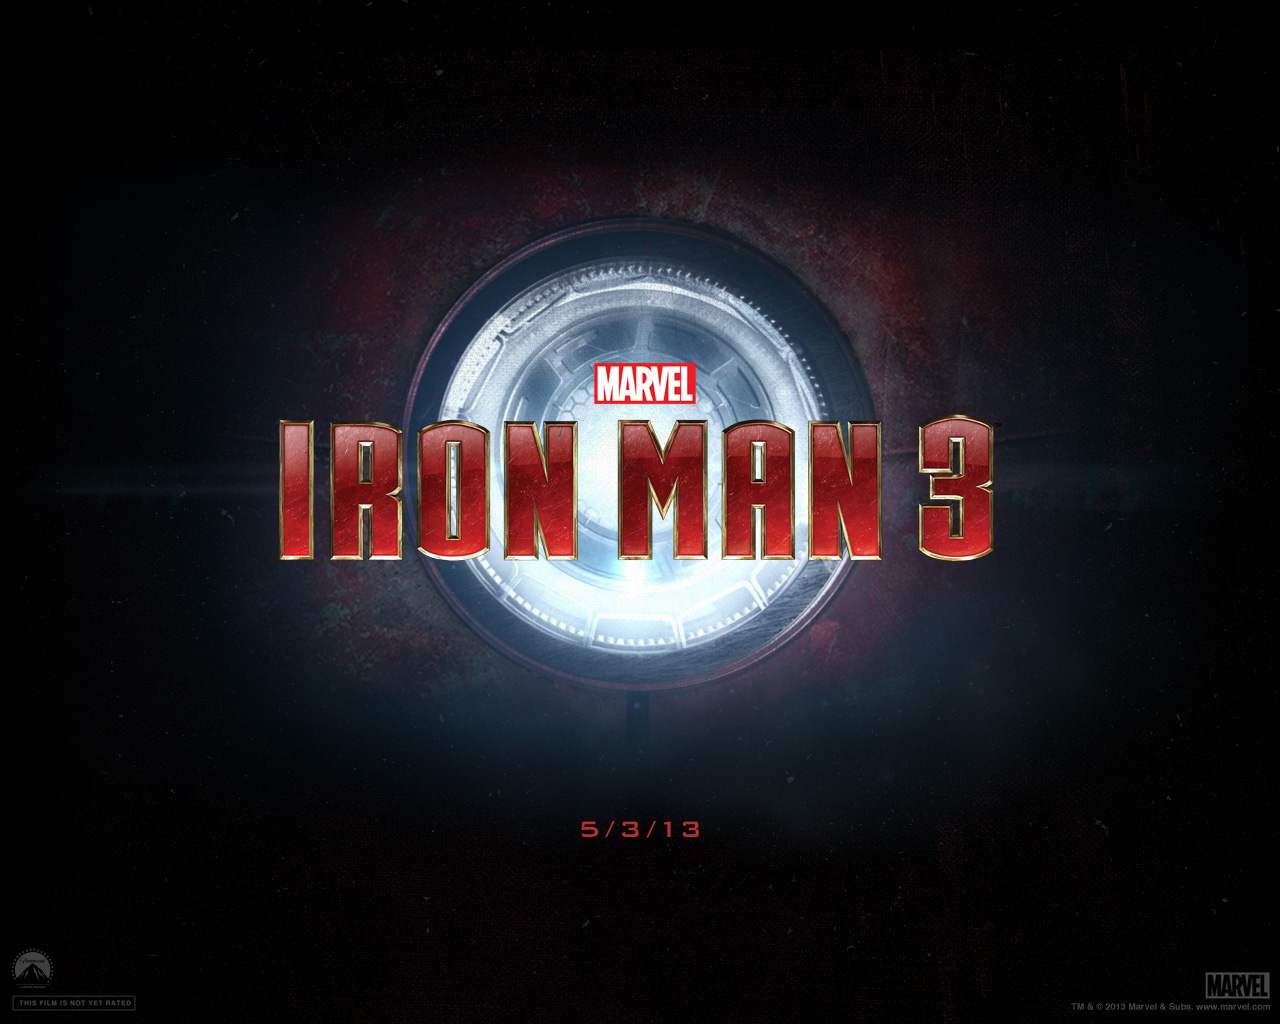 Iron Man 3 wallpaper 1280x1024 004